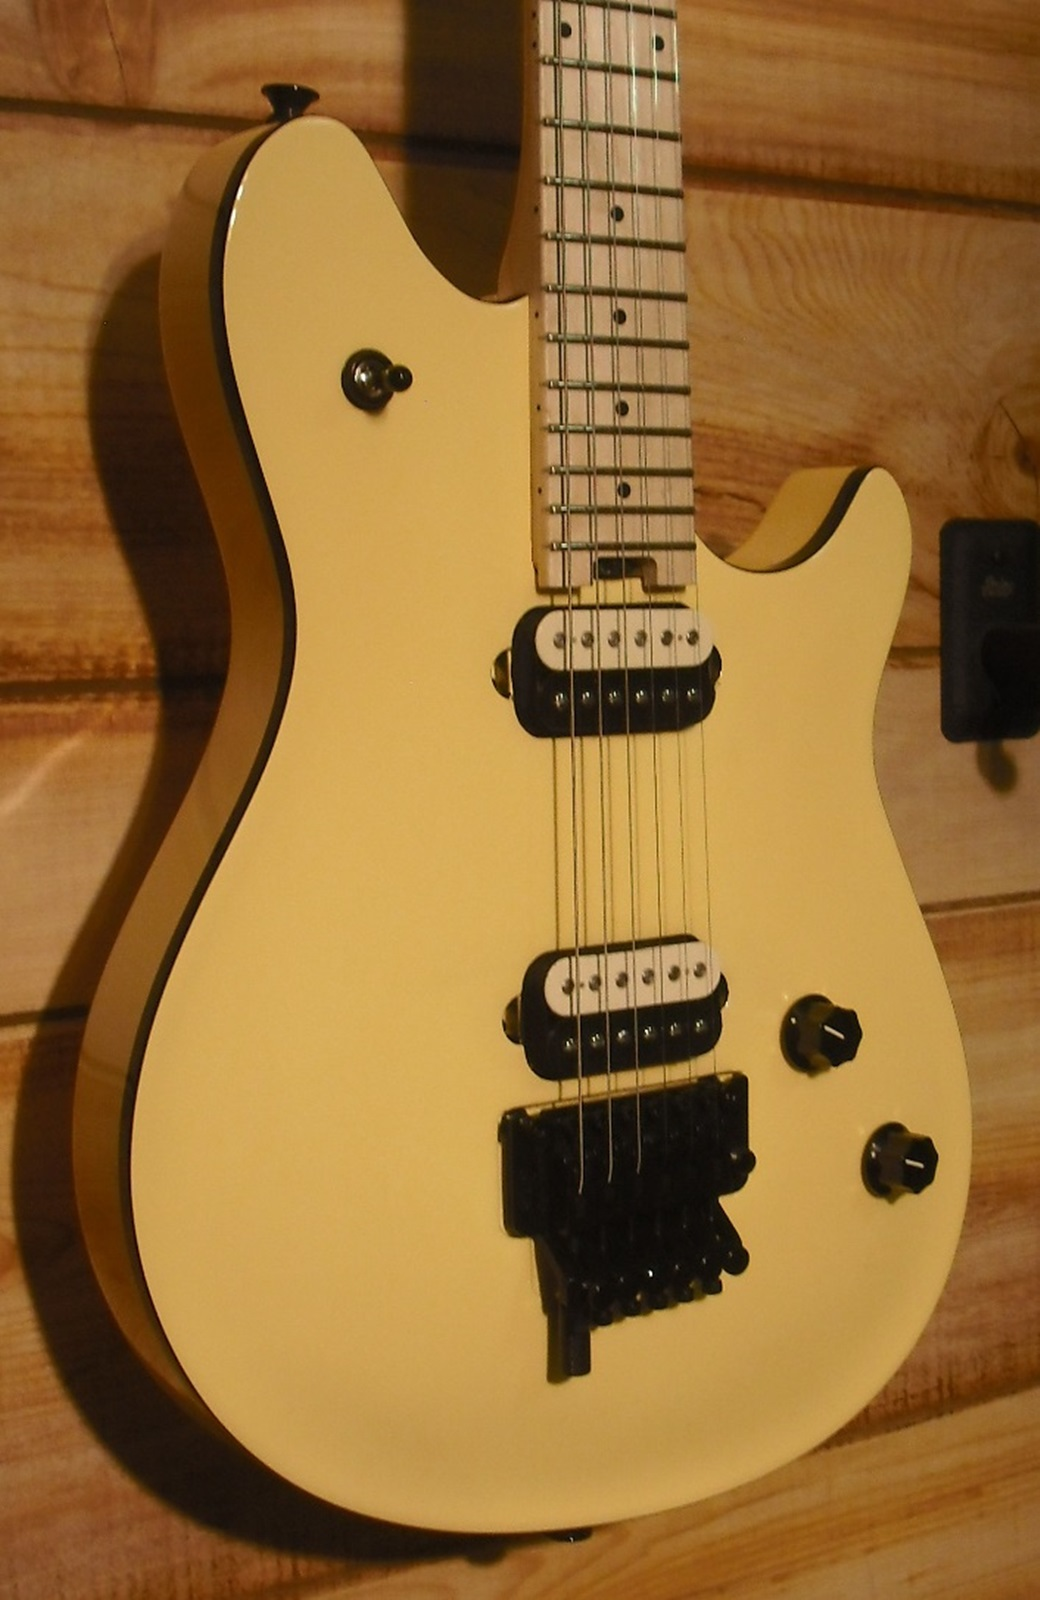 products-evh-wolfgang-spcl-mn-vin-wht-1.jpg